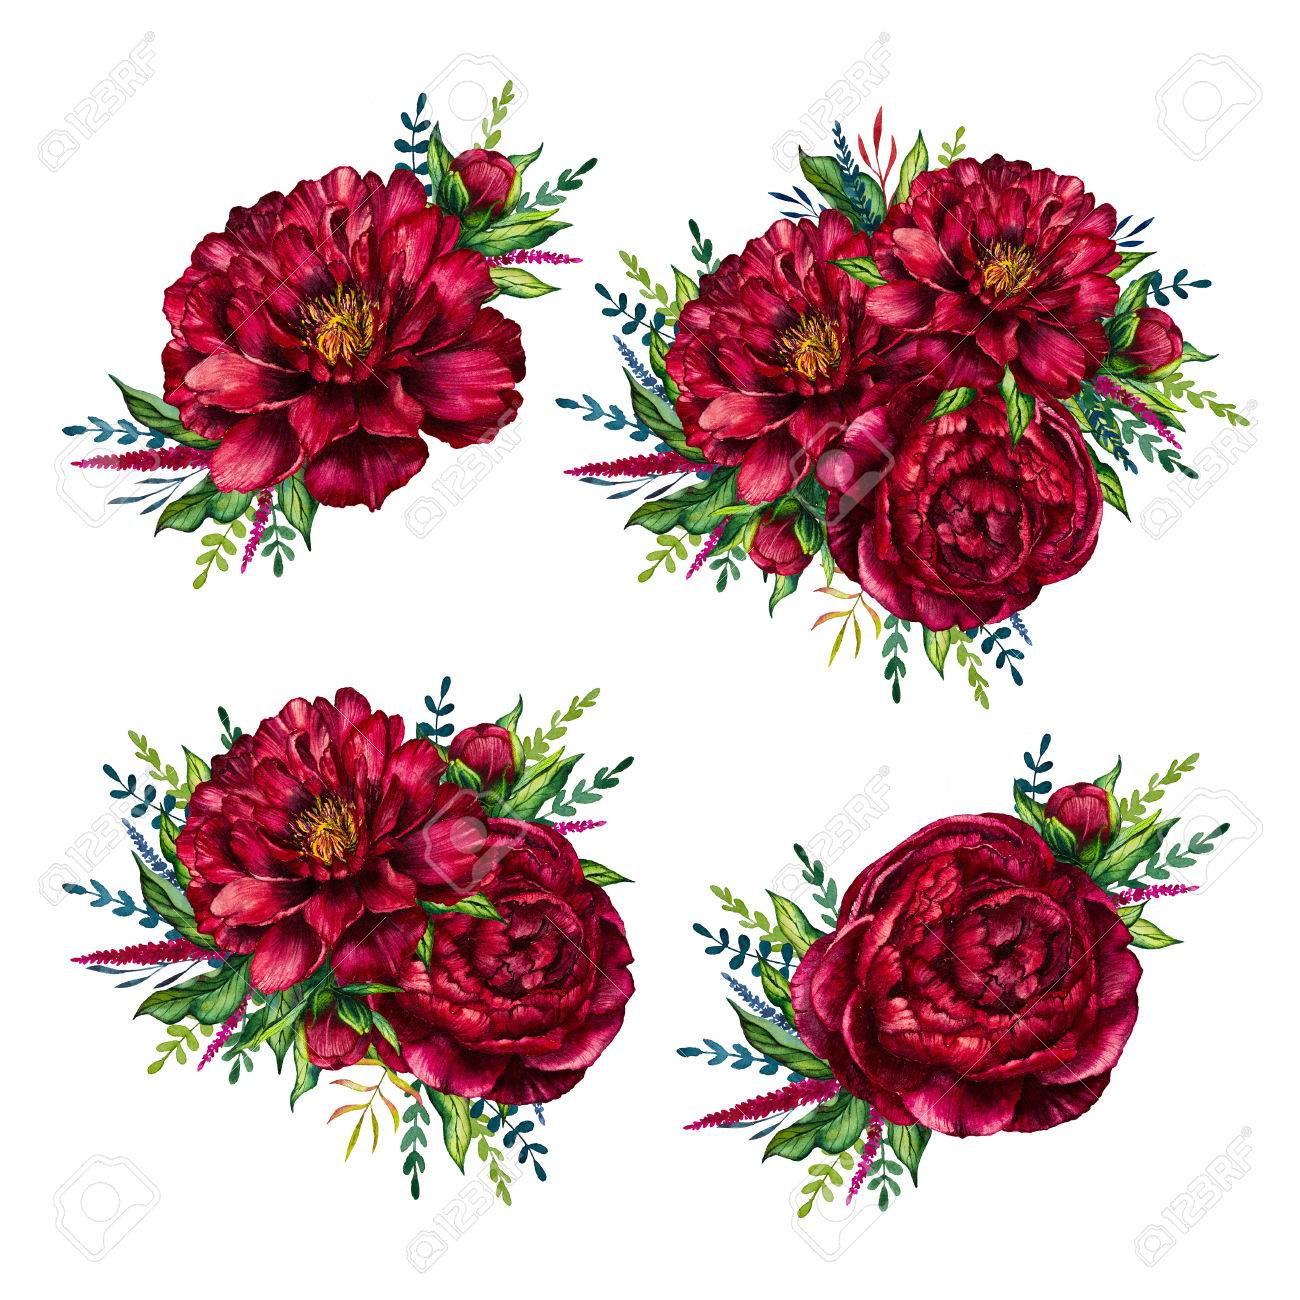 Set Of Watercolor Red Peonies Bouquets, Flower Peony, Watercolor ...